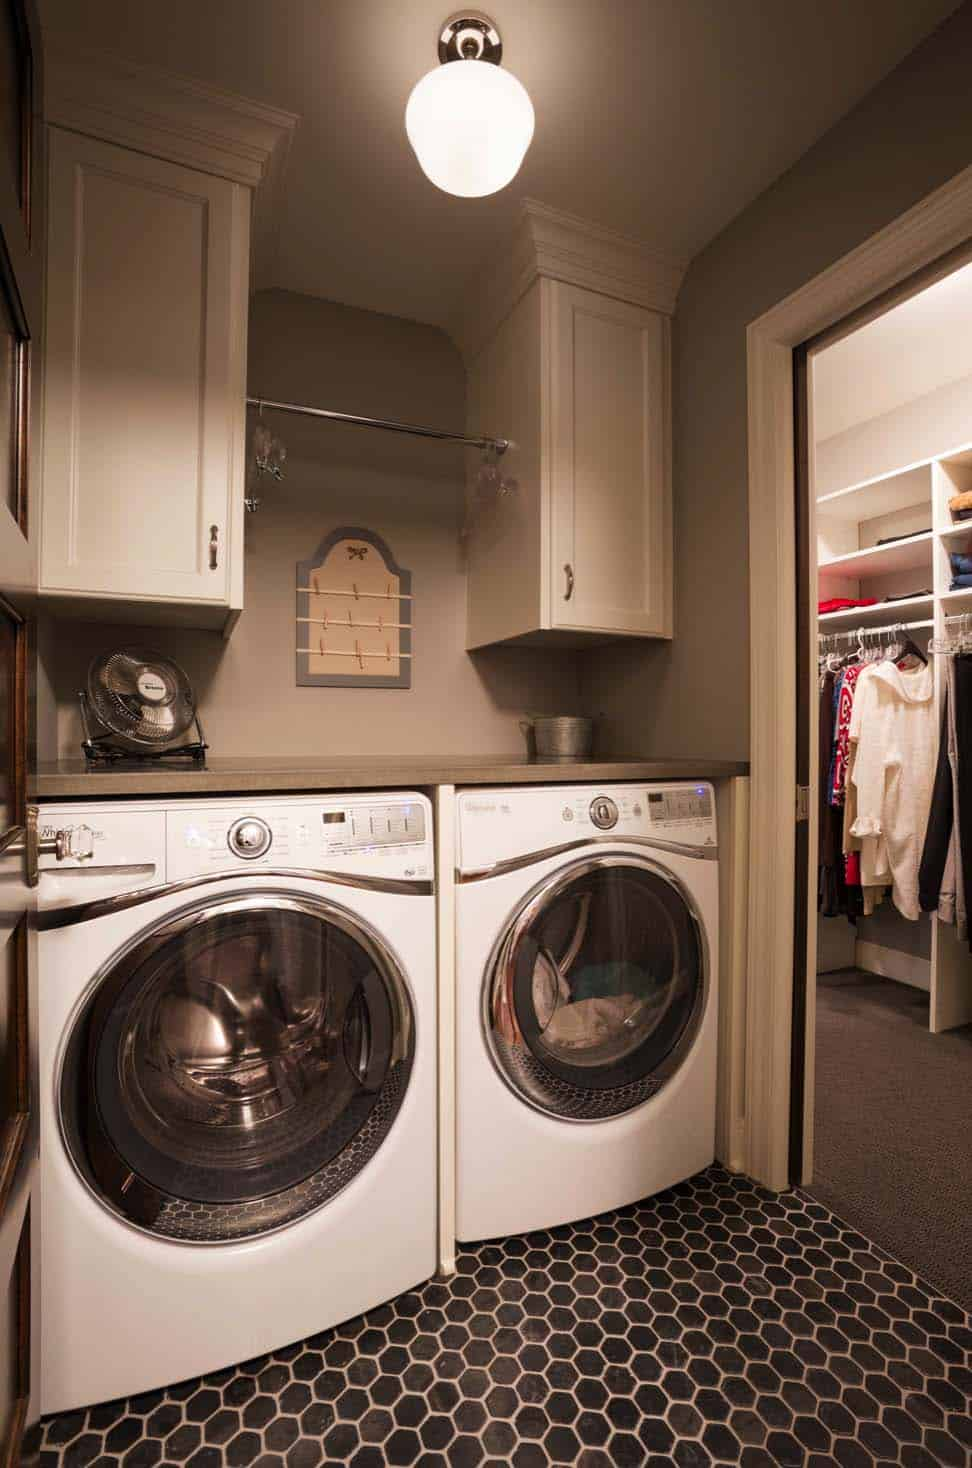 Functional-Stylish Small Laundry Rooms-11-1 Kindesign